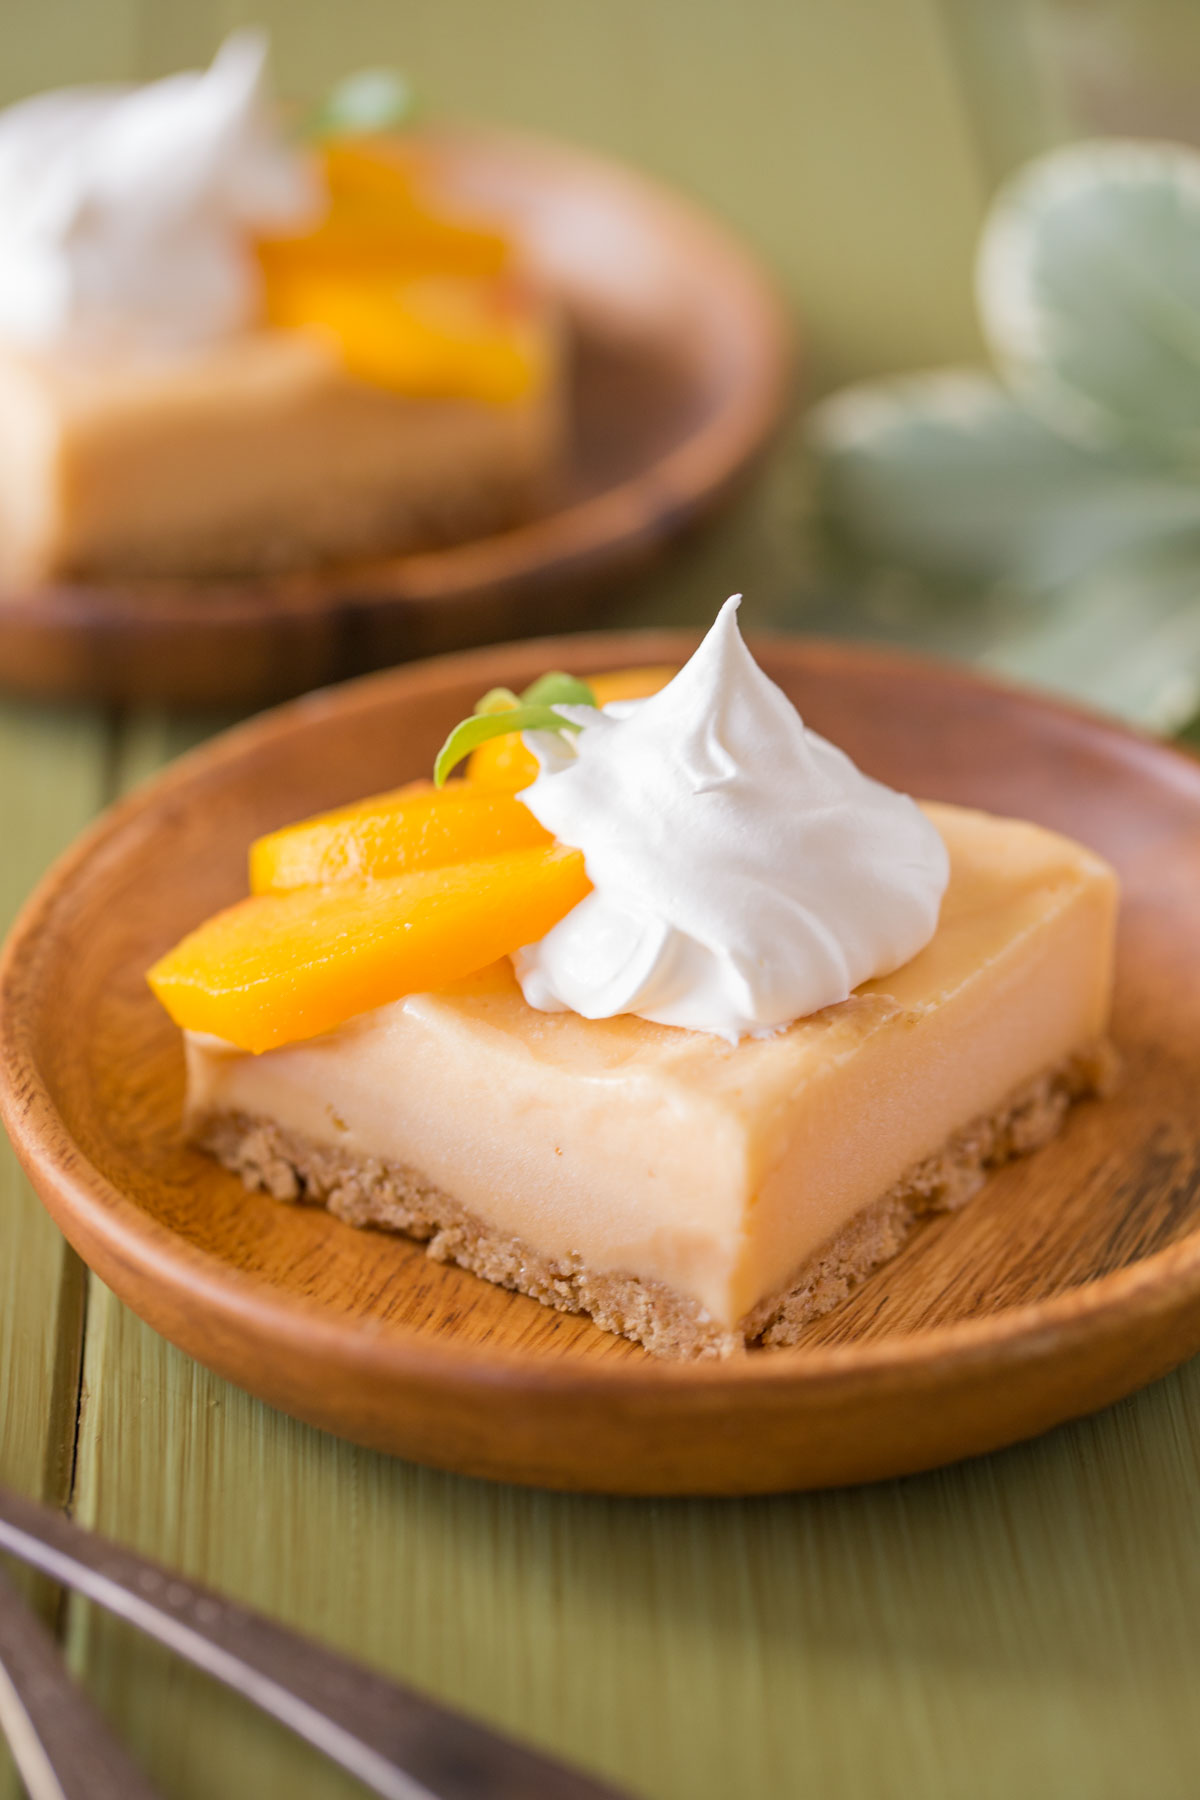 An Easy Homemade Peach Ice Cream Bar on a wood plate, topped with whipped cream and fresh peach slices.